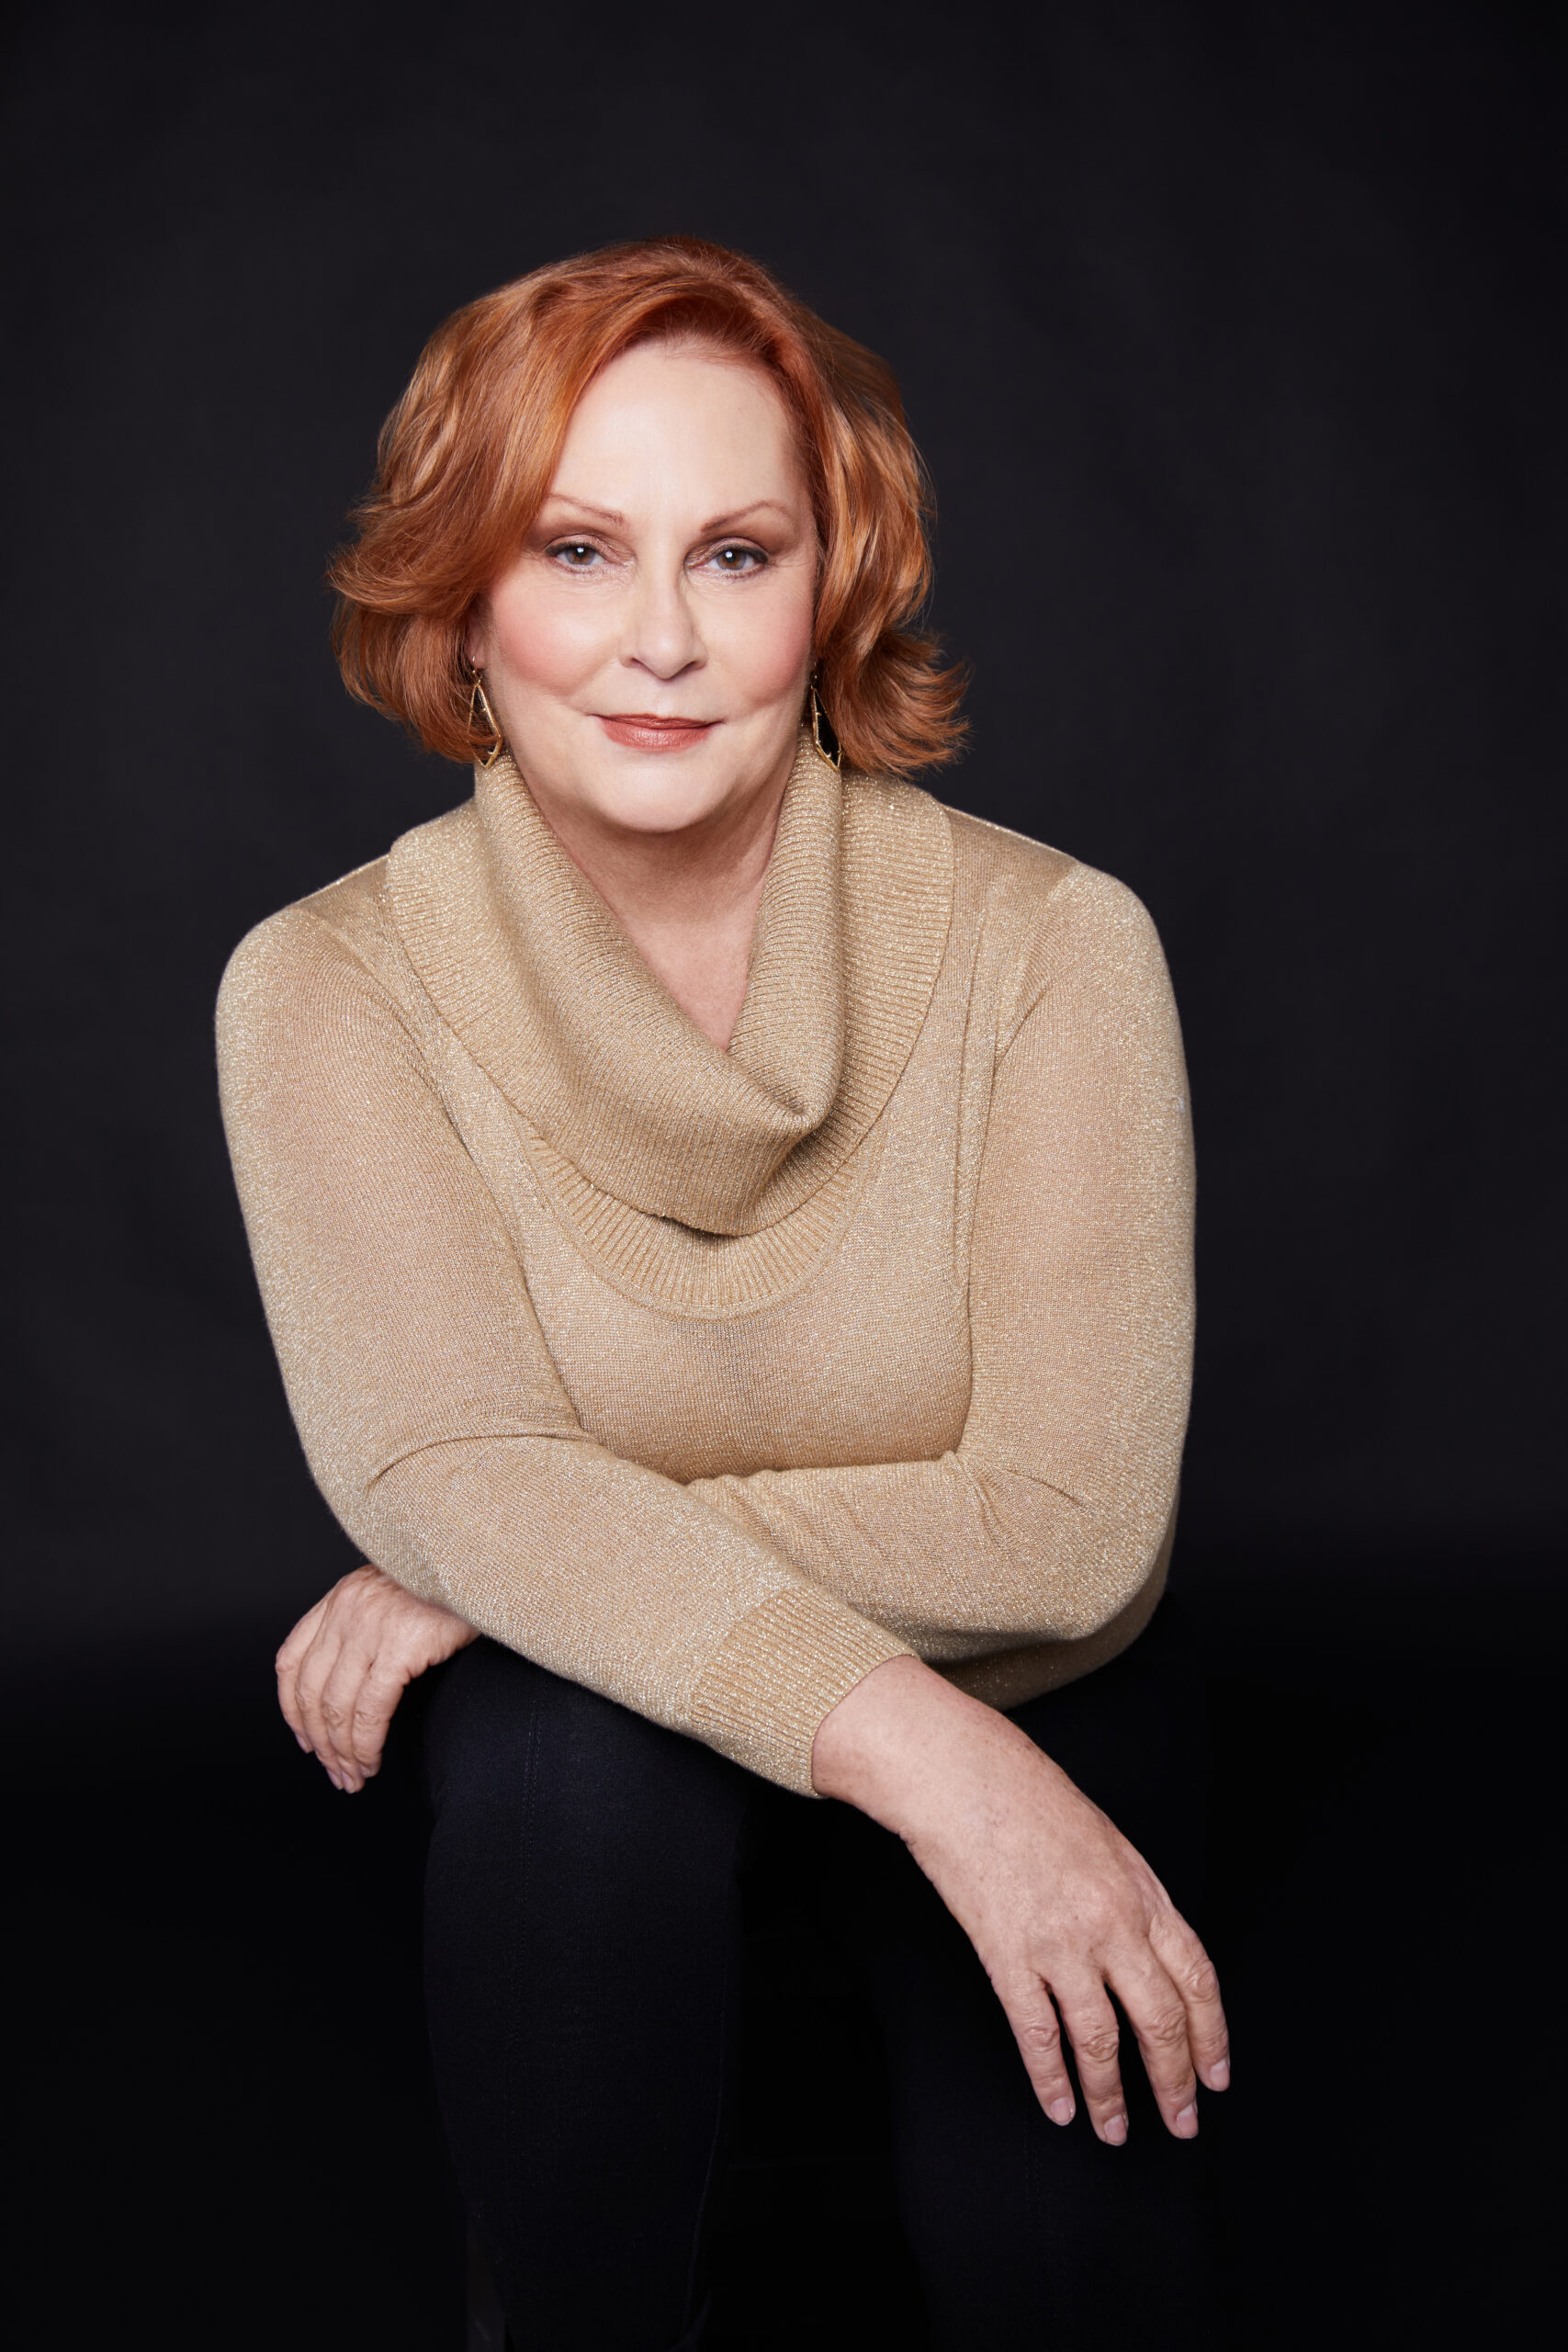 Houston's best headshot photographer Angi Lewis Photography headshot of woman in gold sweater with red hair